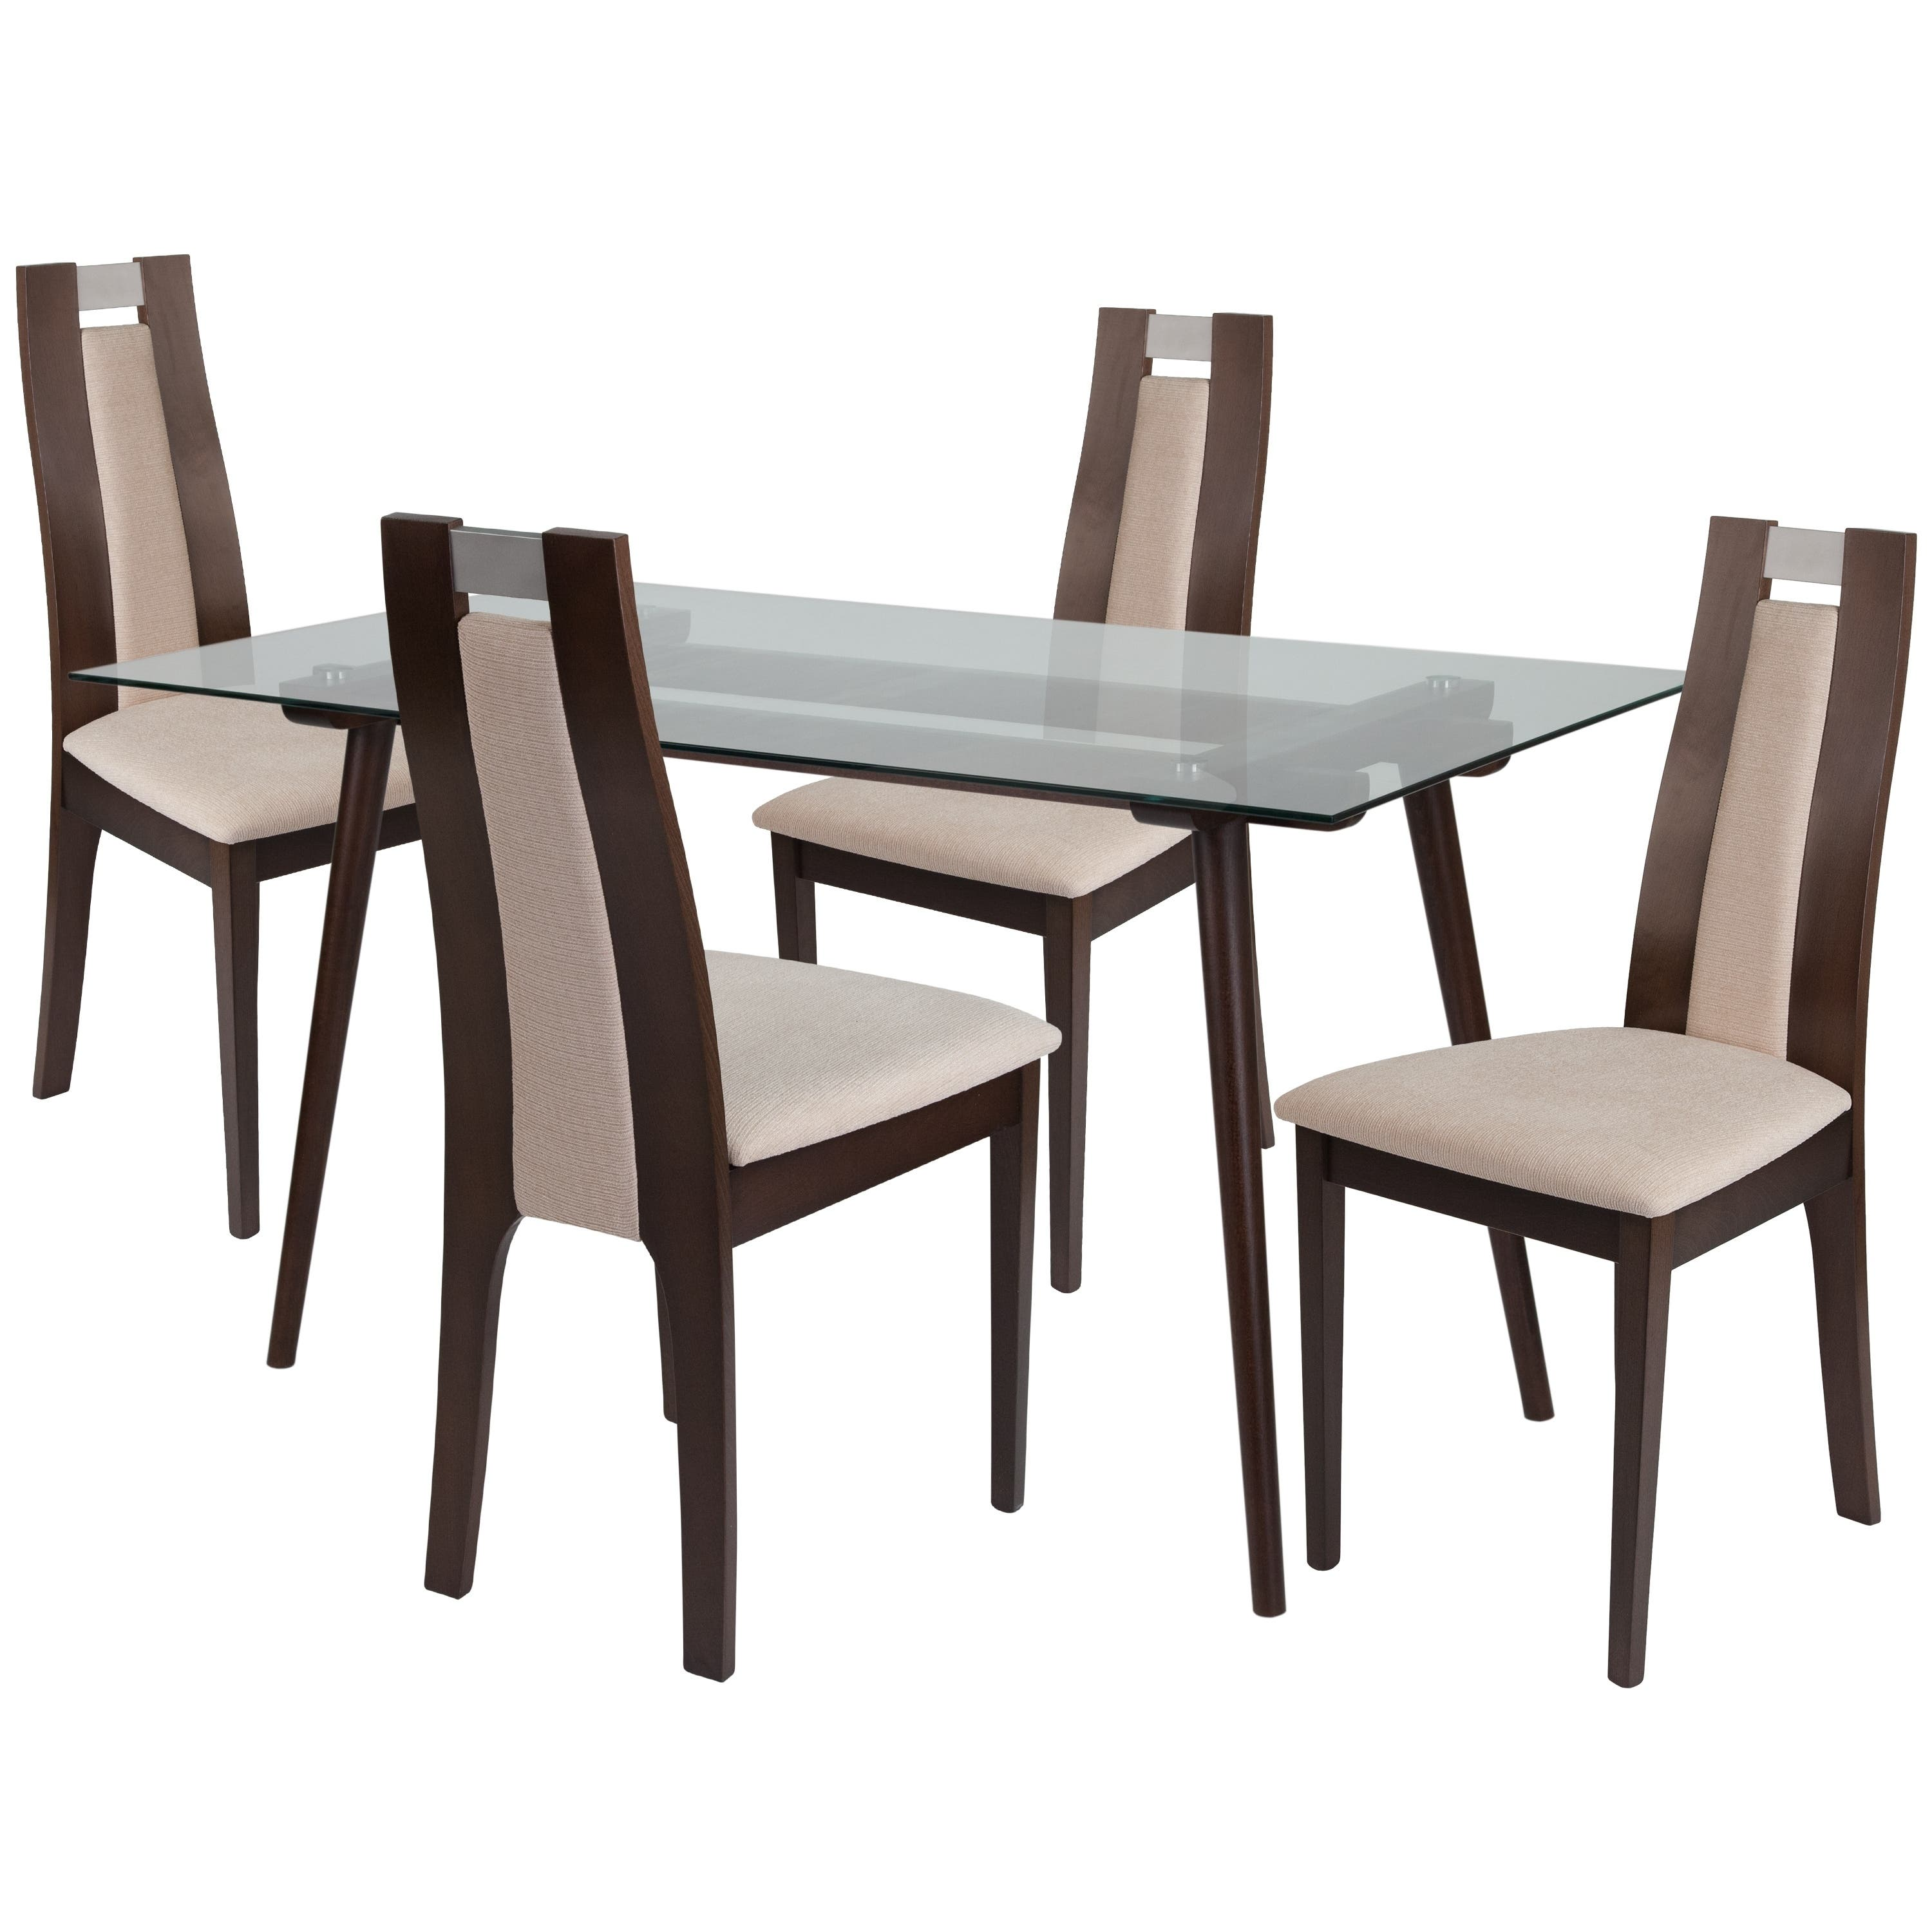 Fairview Dining Room: Buy Kitchen & Dining Room Sets Online At Overstock